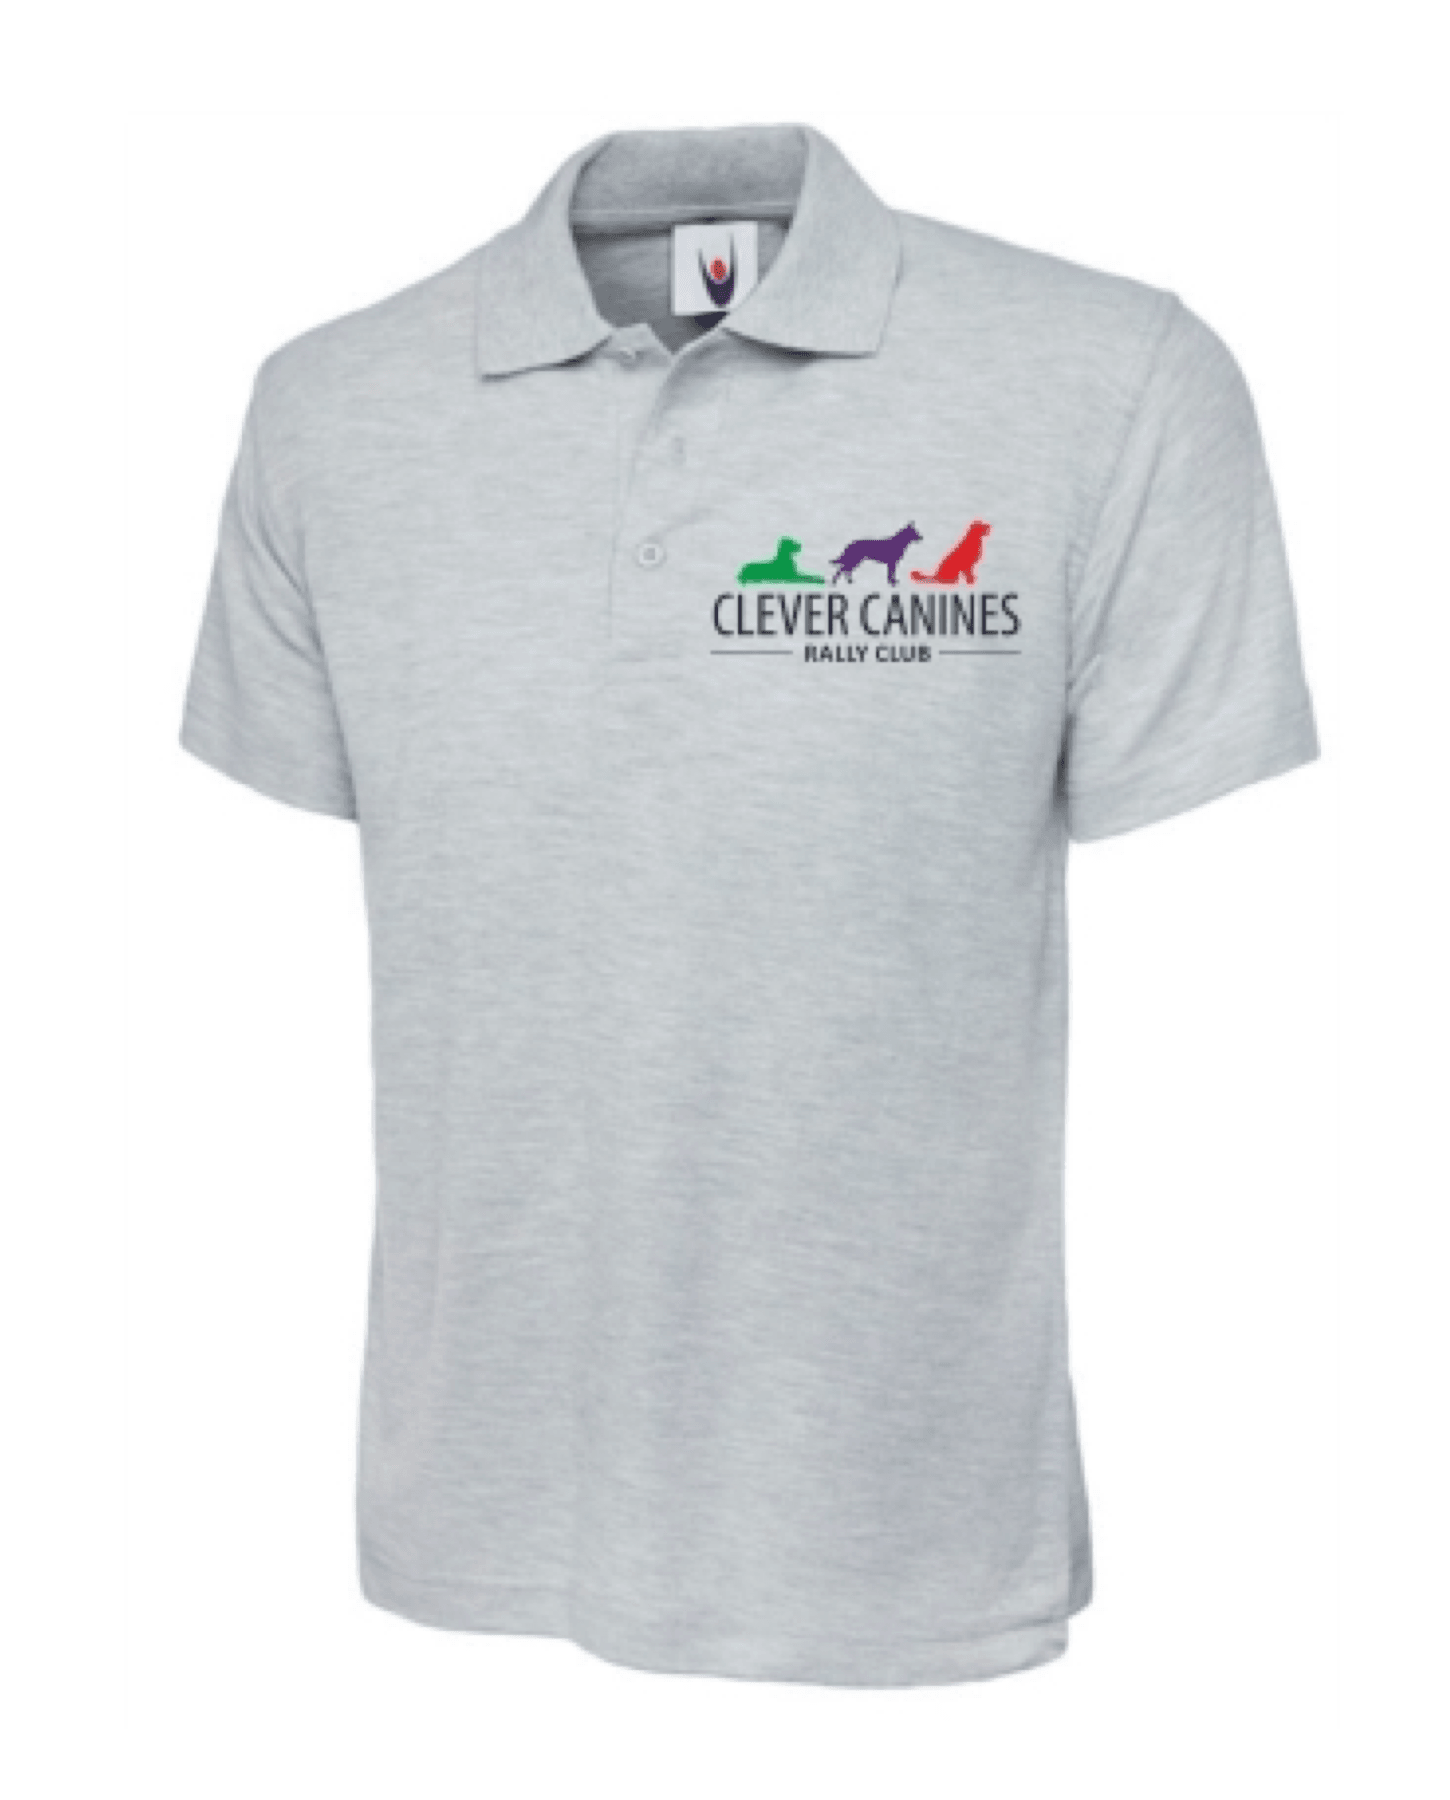 Clever Canines Rally Club Unisex Polo